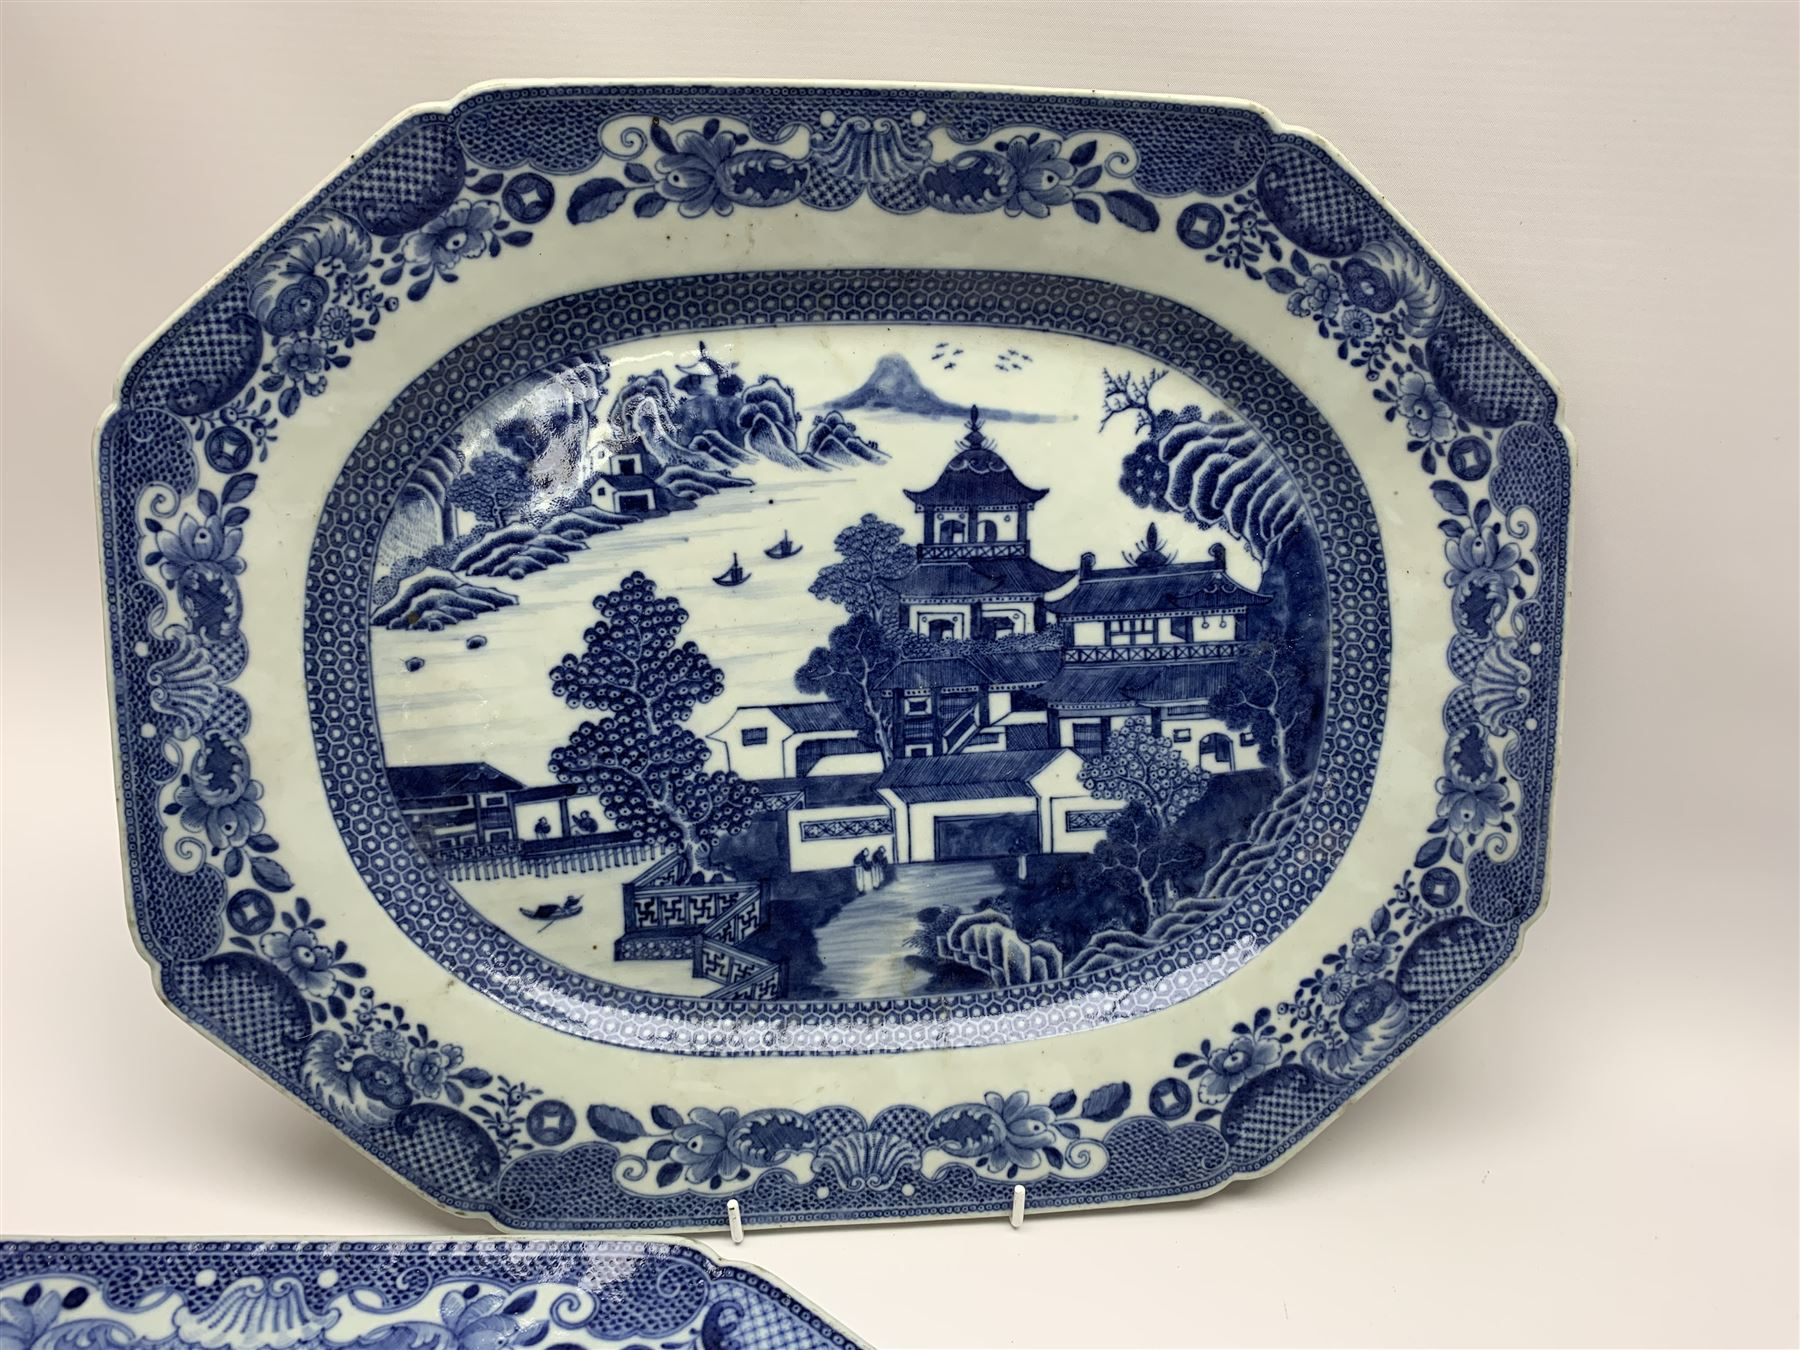 Late 18th/early 19th century Chinese export blue and white forty seven piece part dinner service - Image 4 of 20